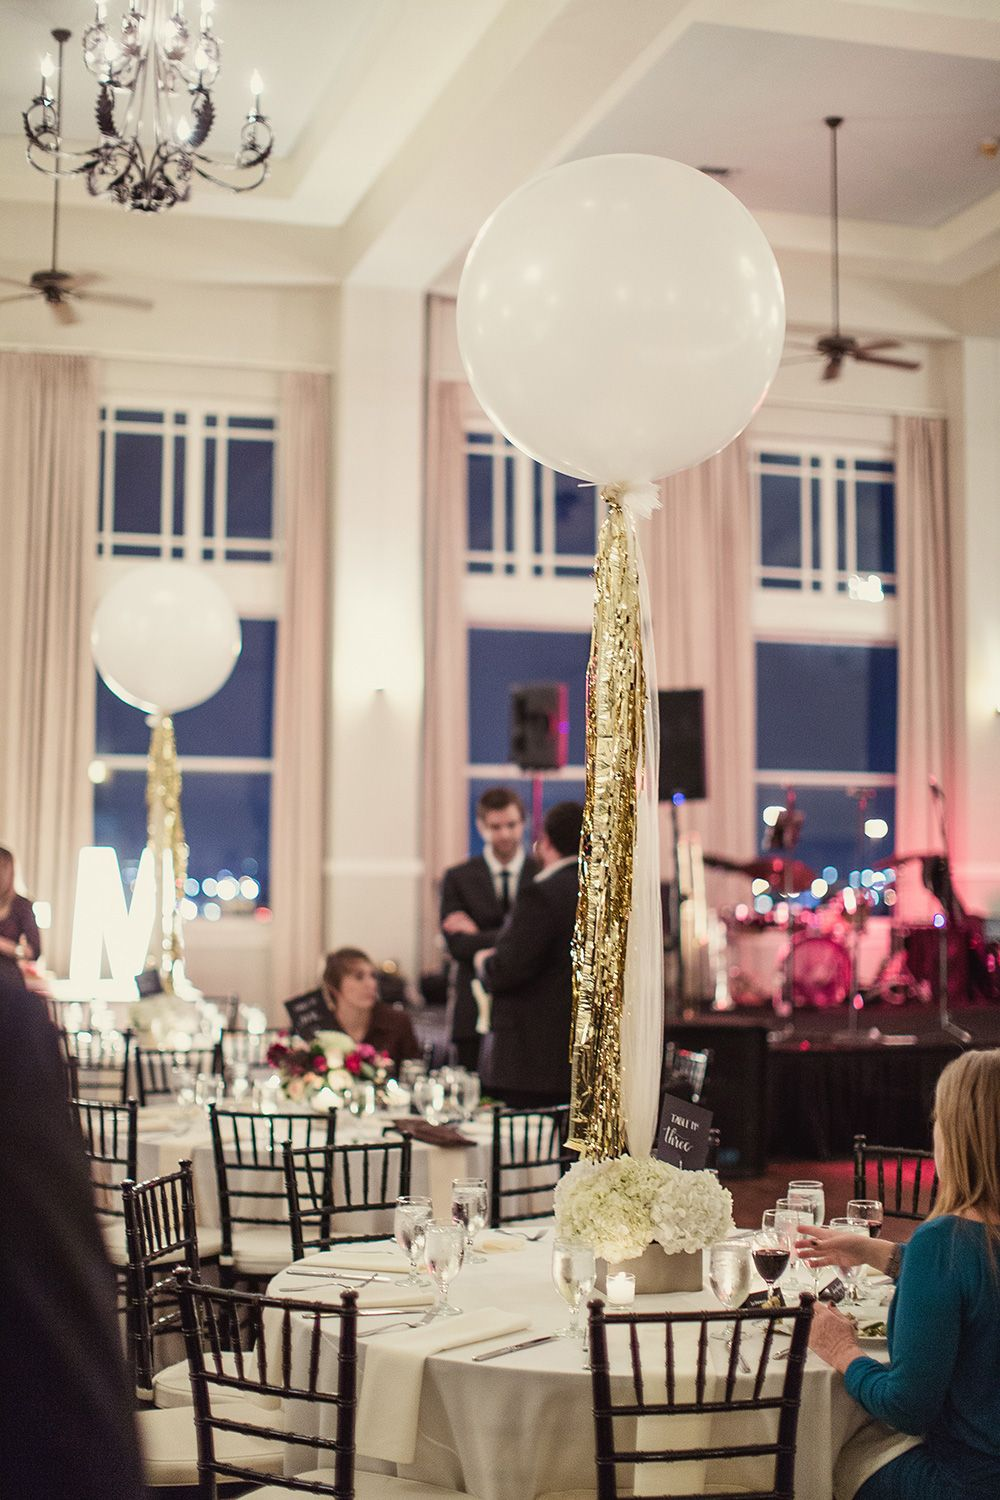 Wedding decoration ideas balloons  Extra large balloons with gold tassels make a darling and creative